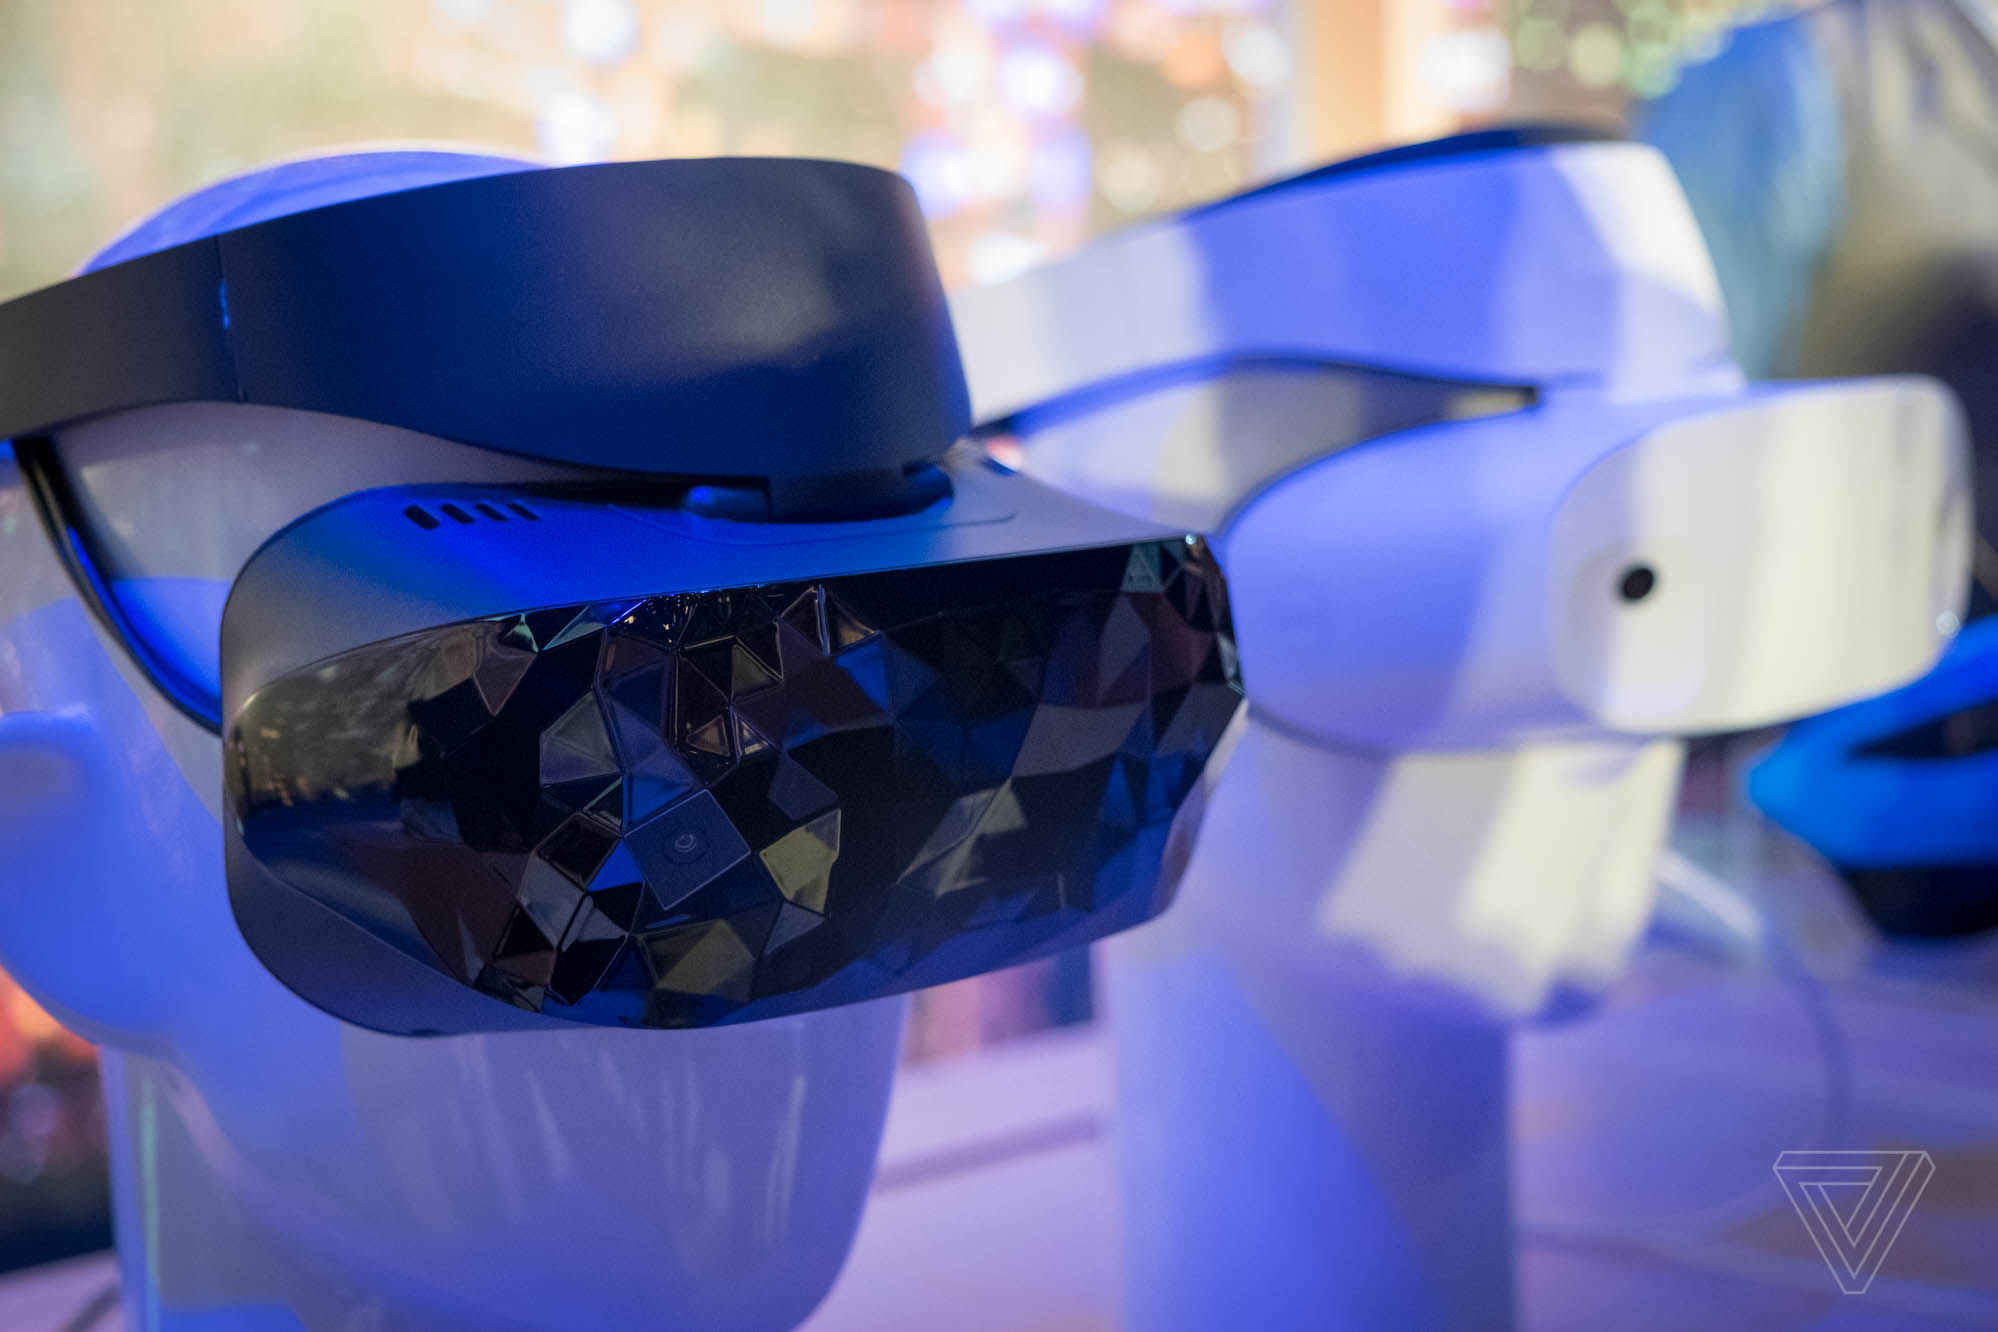 Microsoft showcases Windows Mixed Reality headsets at Computex 2017